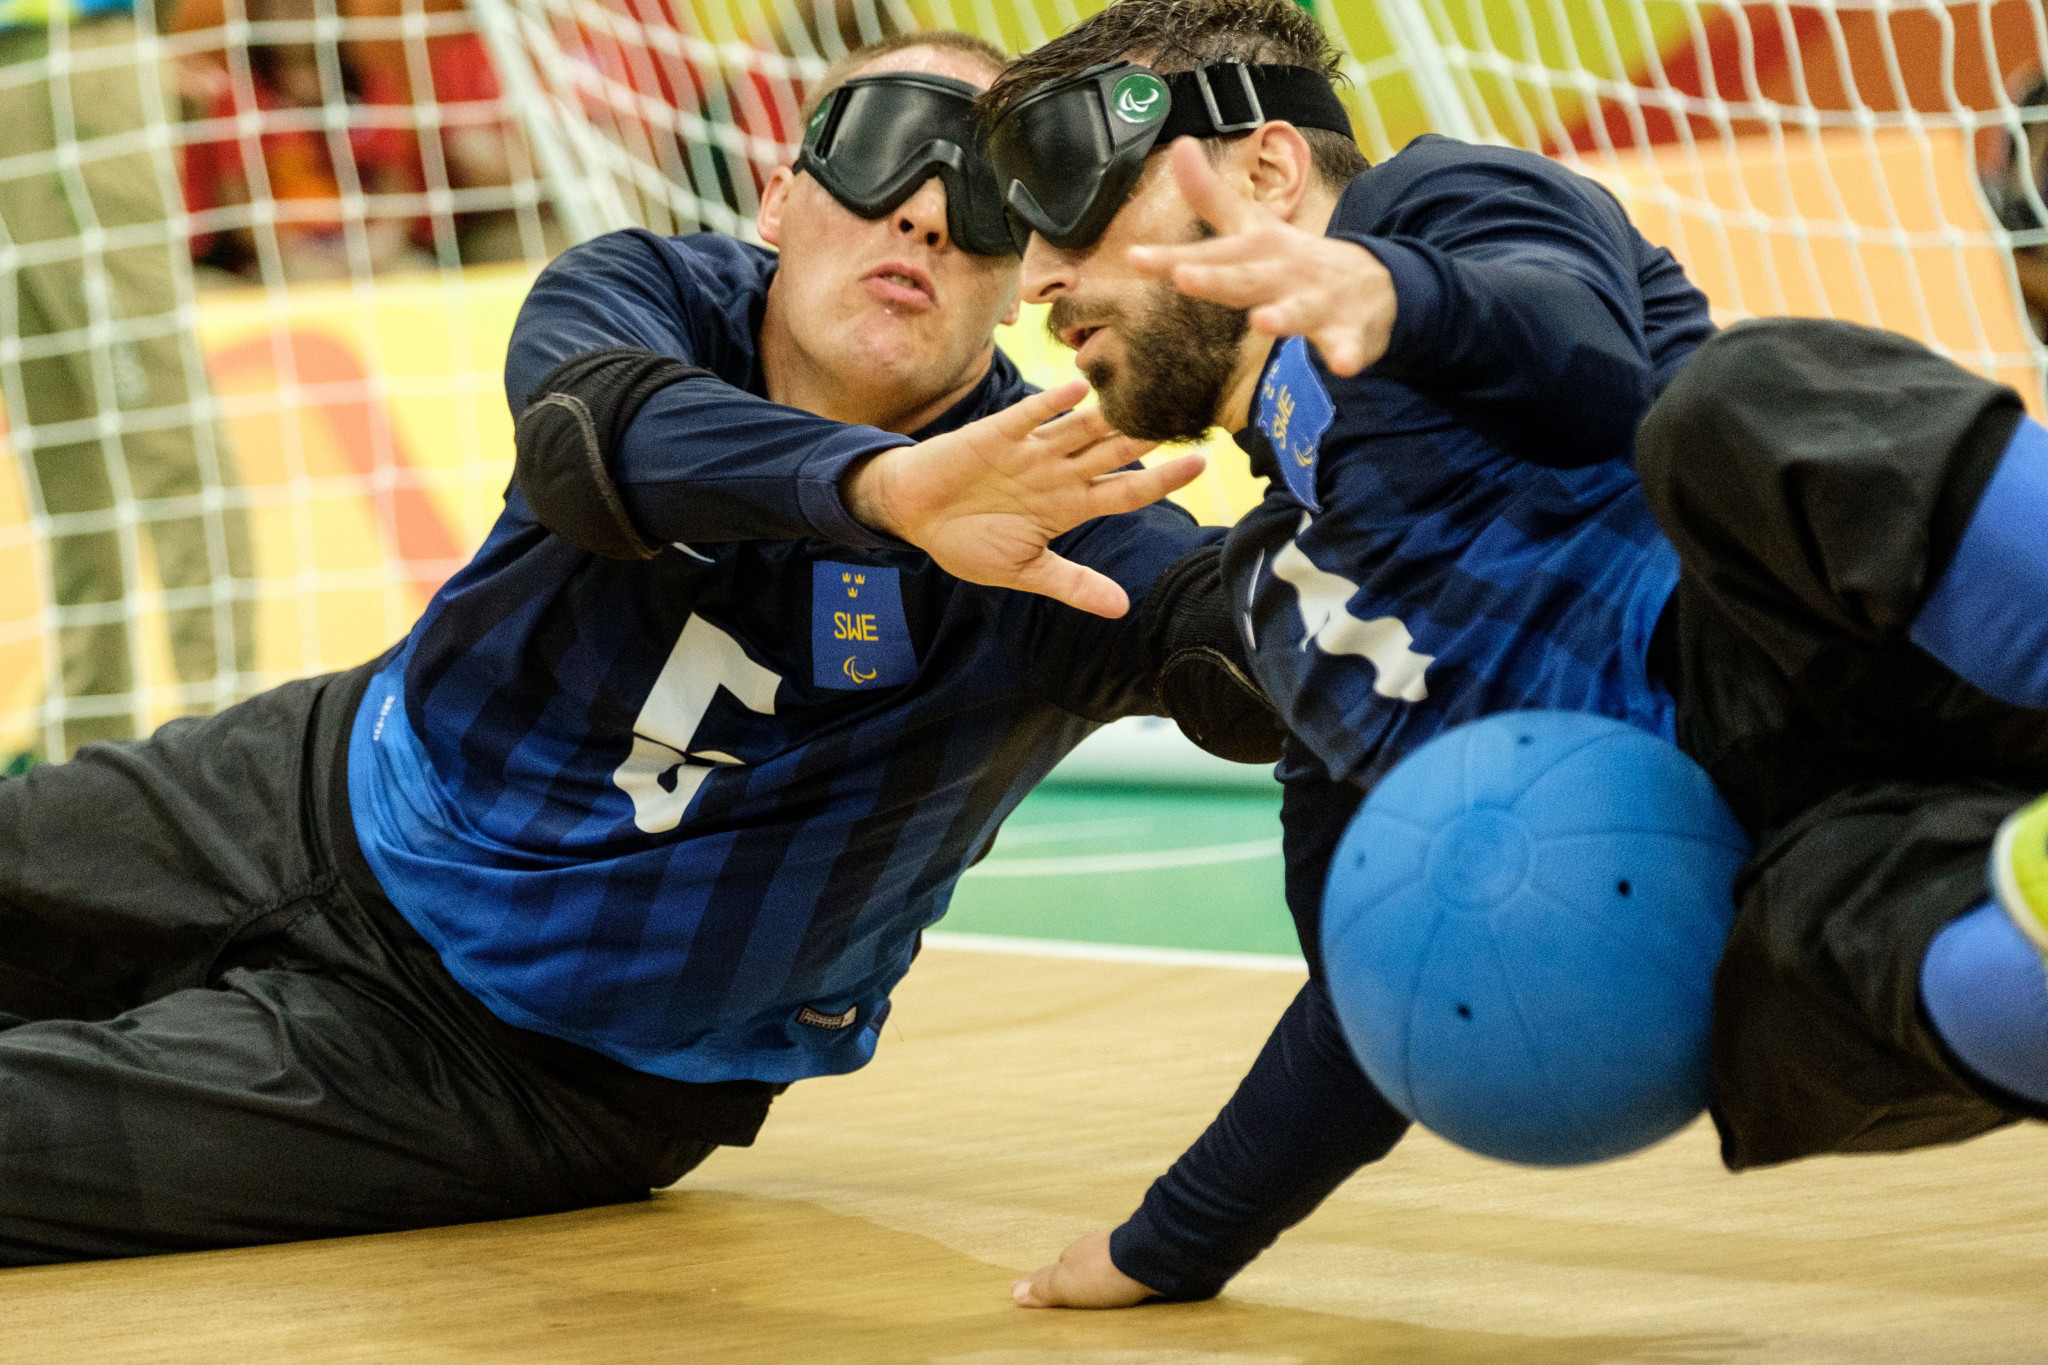 Goalball qualifiers for Tokyo 2020 will take place in Fort Wayne ©Getty Images